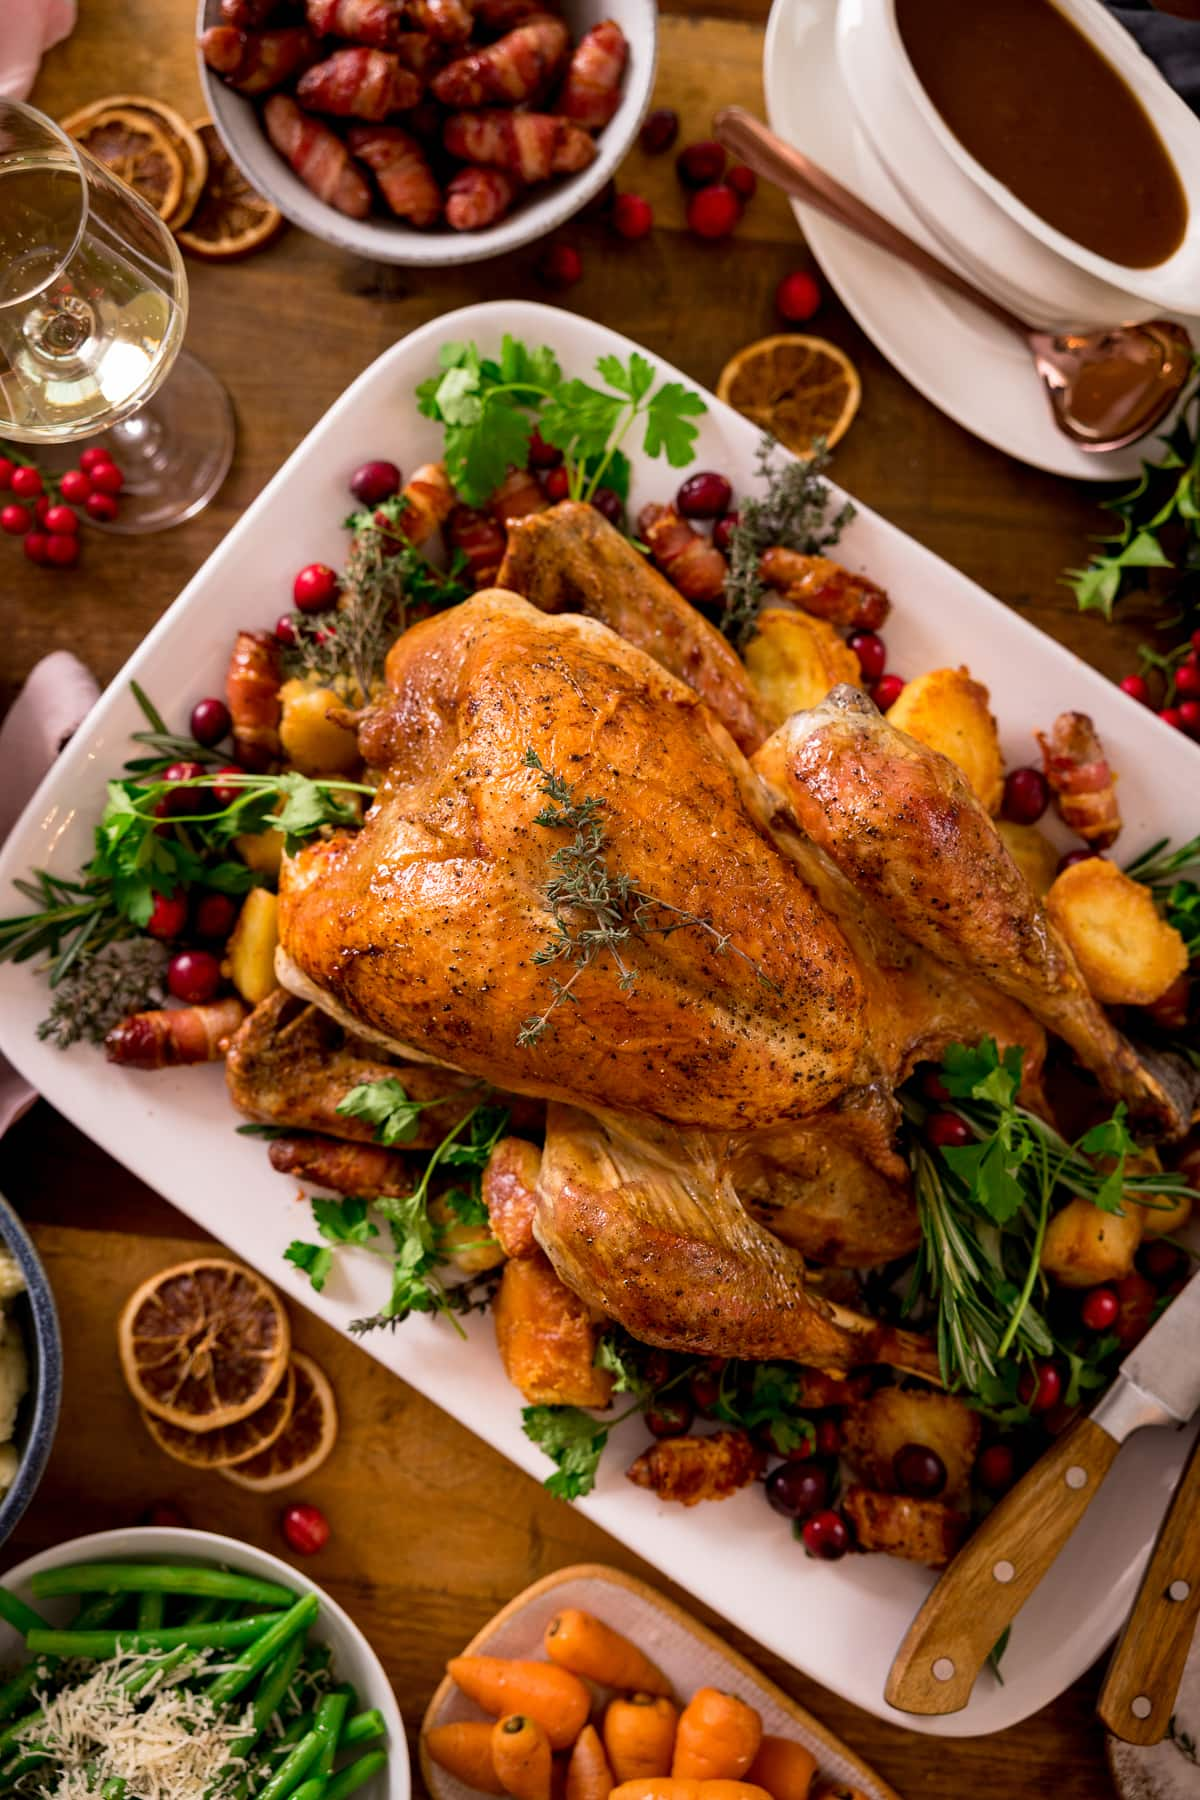 Roast turkey on a white rectangular plate surrounded by side dishes.